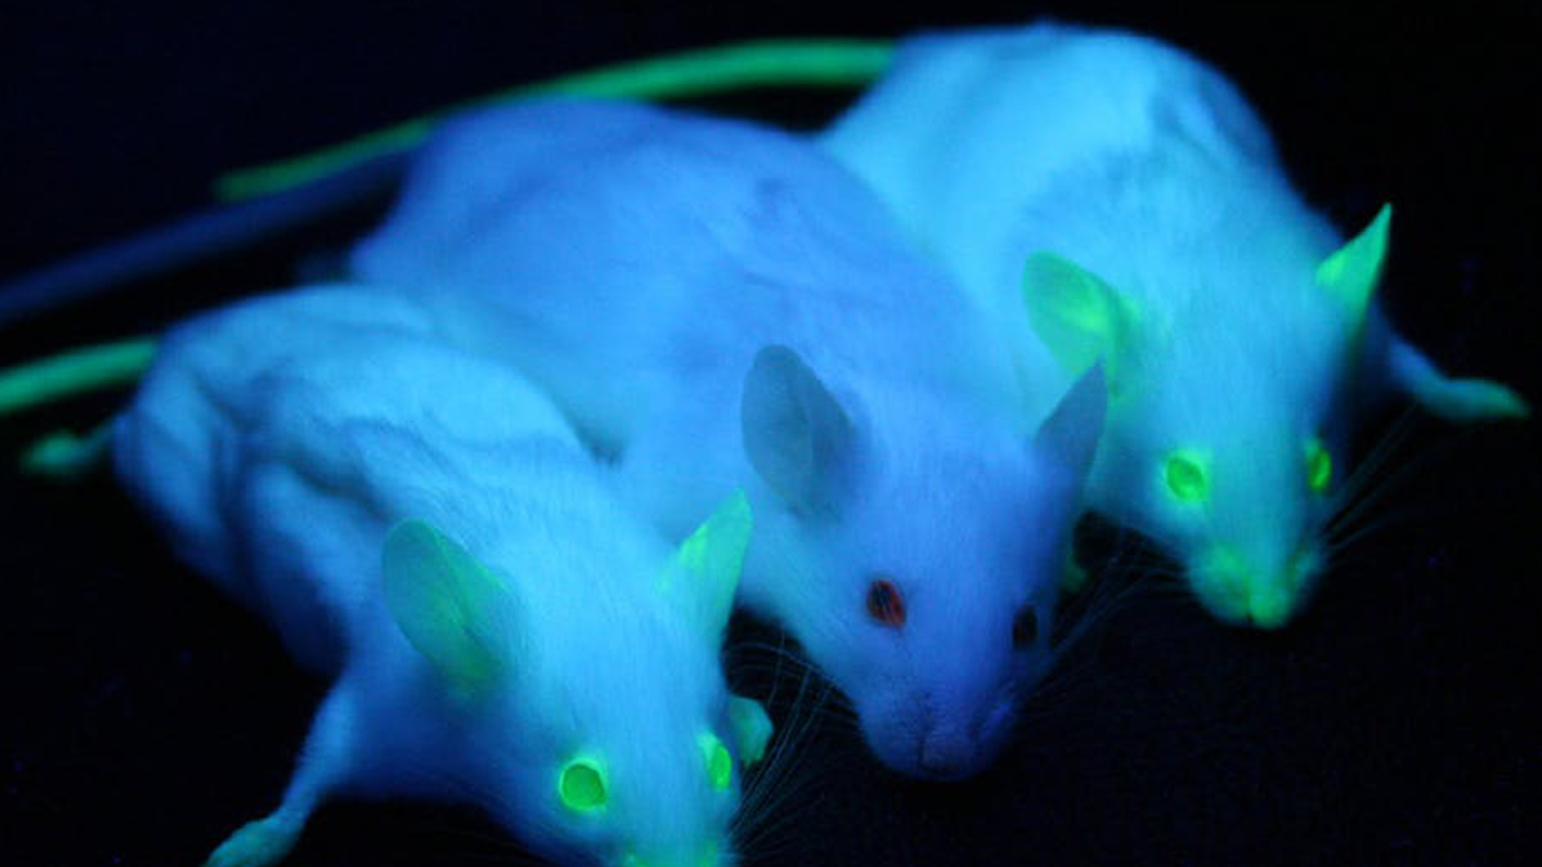 Image of three mice glowing in the dark